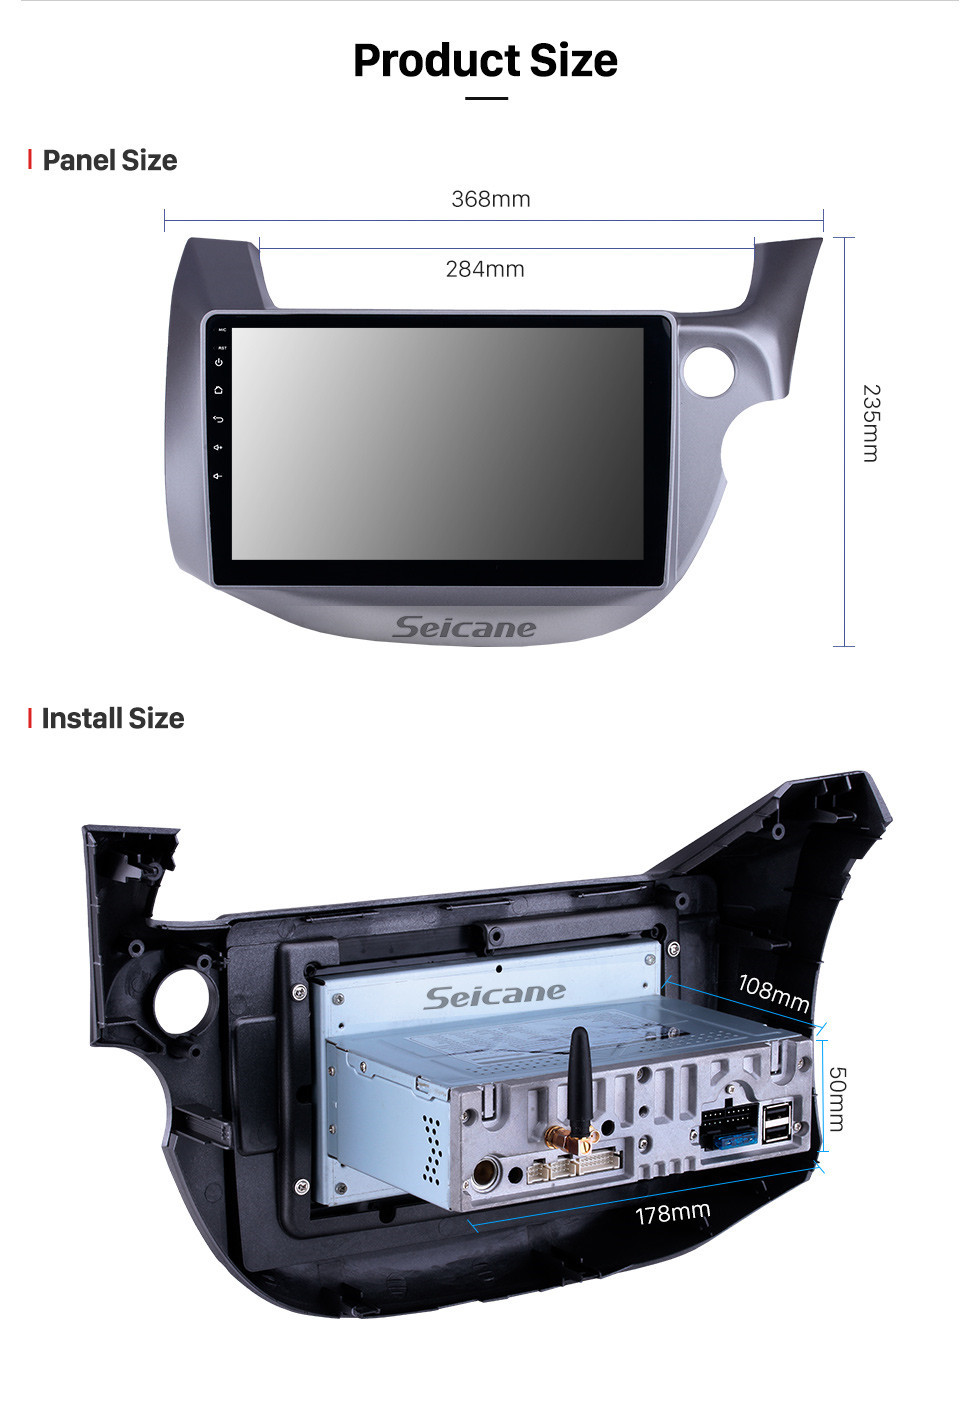 Seicane 2007-2013 Honda FIT Jazz RHD 10.1 inch Android 10.0 Multimedia Player with GPS Navi Radio USB 1024*600 Touchscreen Bluetooth AUX WIFI support DVD 4G SWC